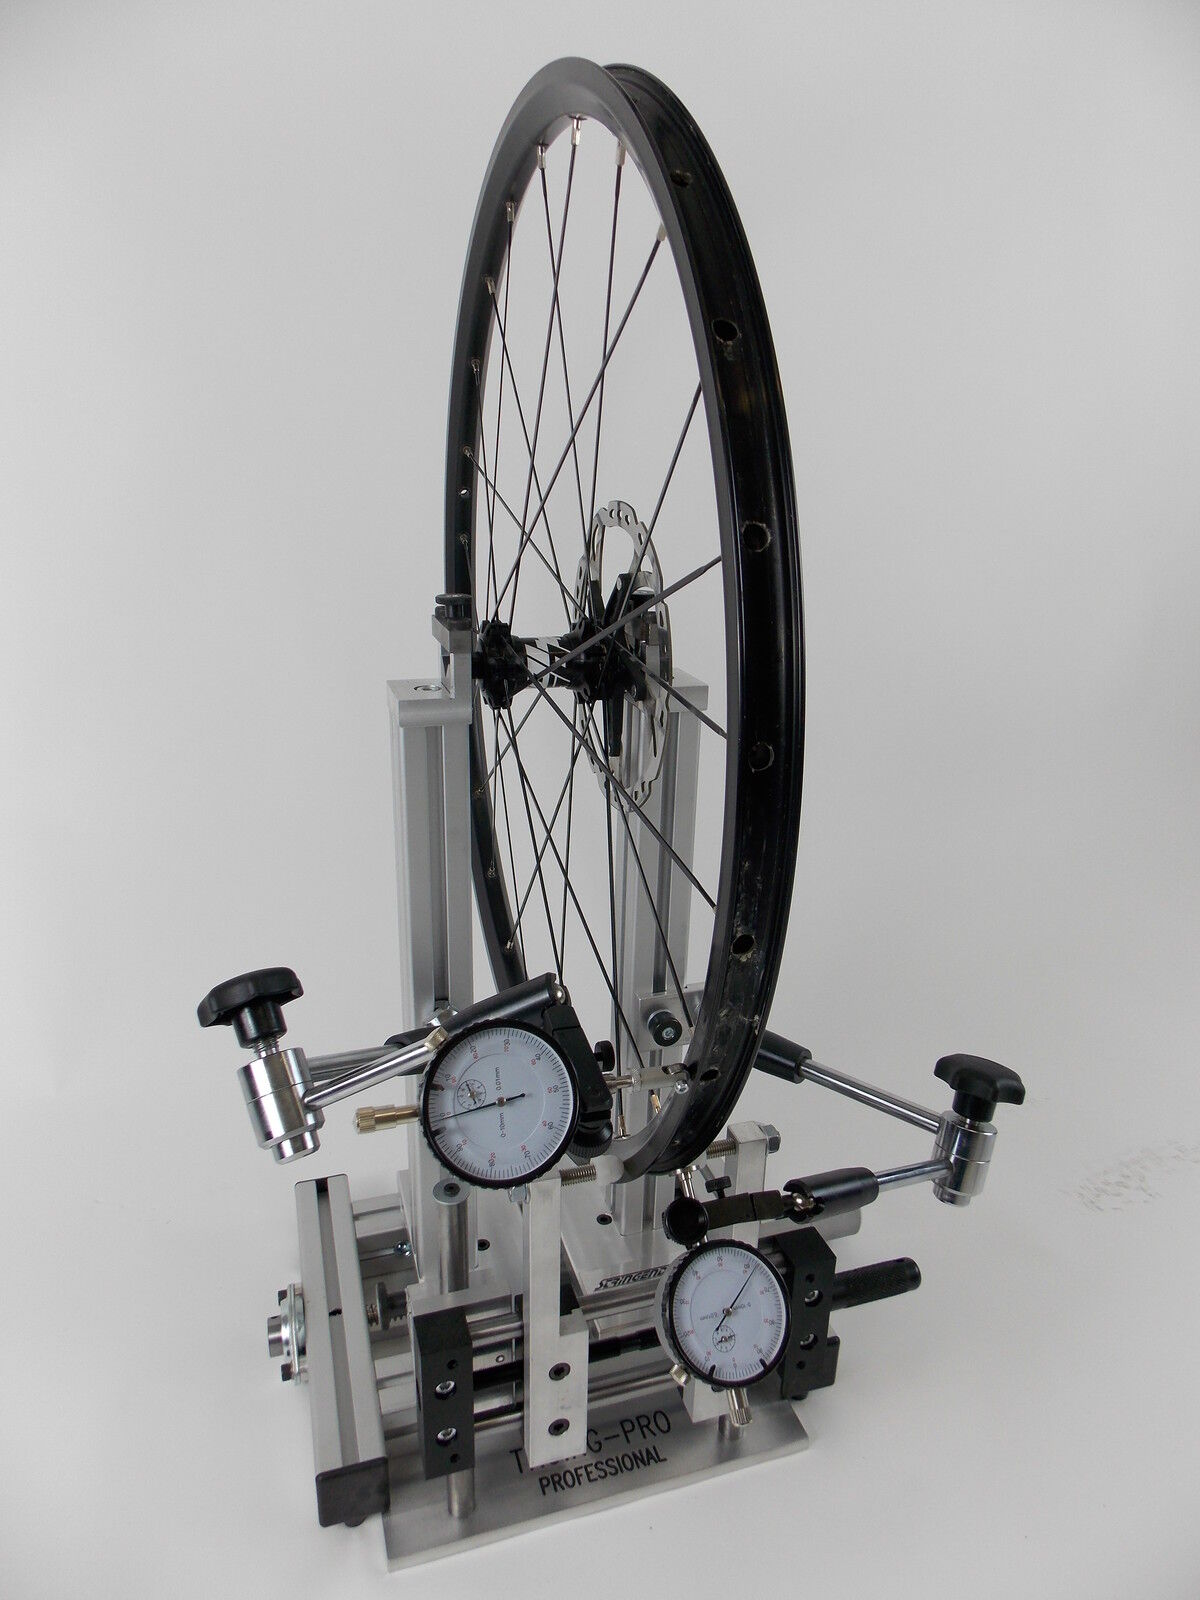 Foret Support, truing Pro-Professional, Wheel truing stand